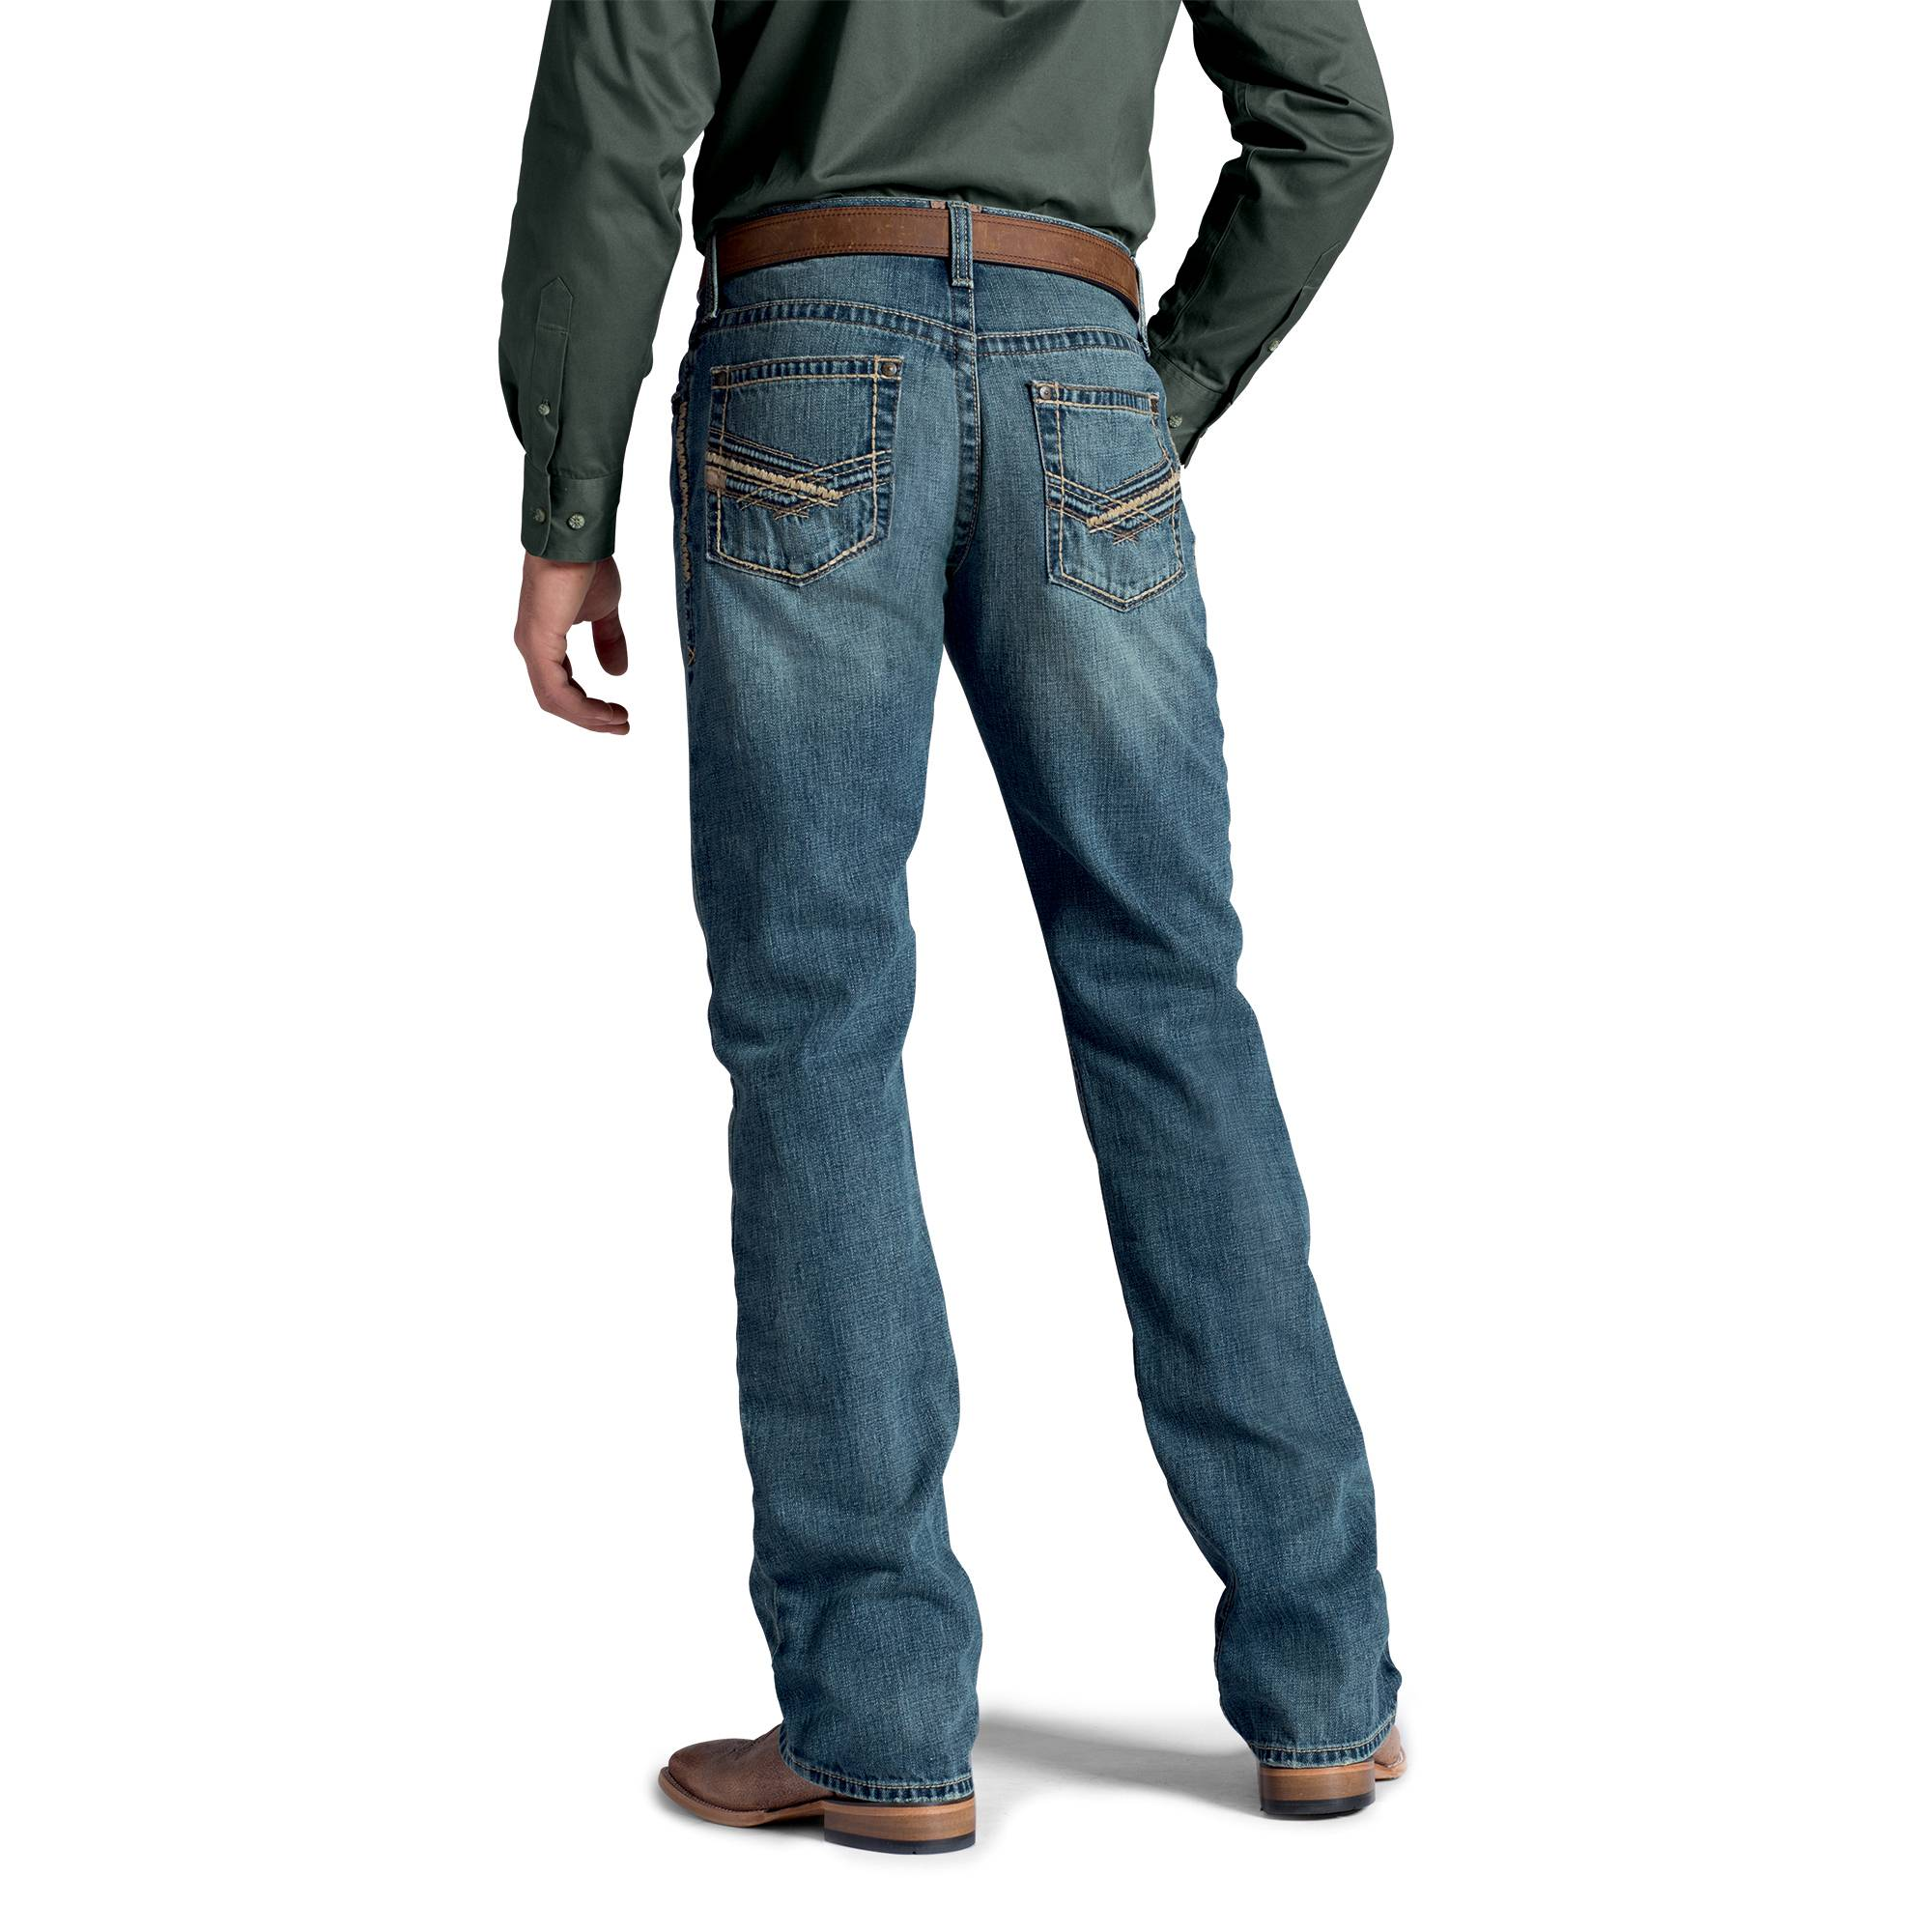 Ariat Men's M4 Charleston Jeans - Nevada